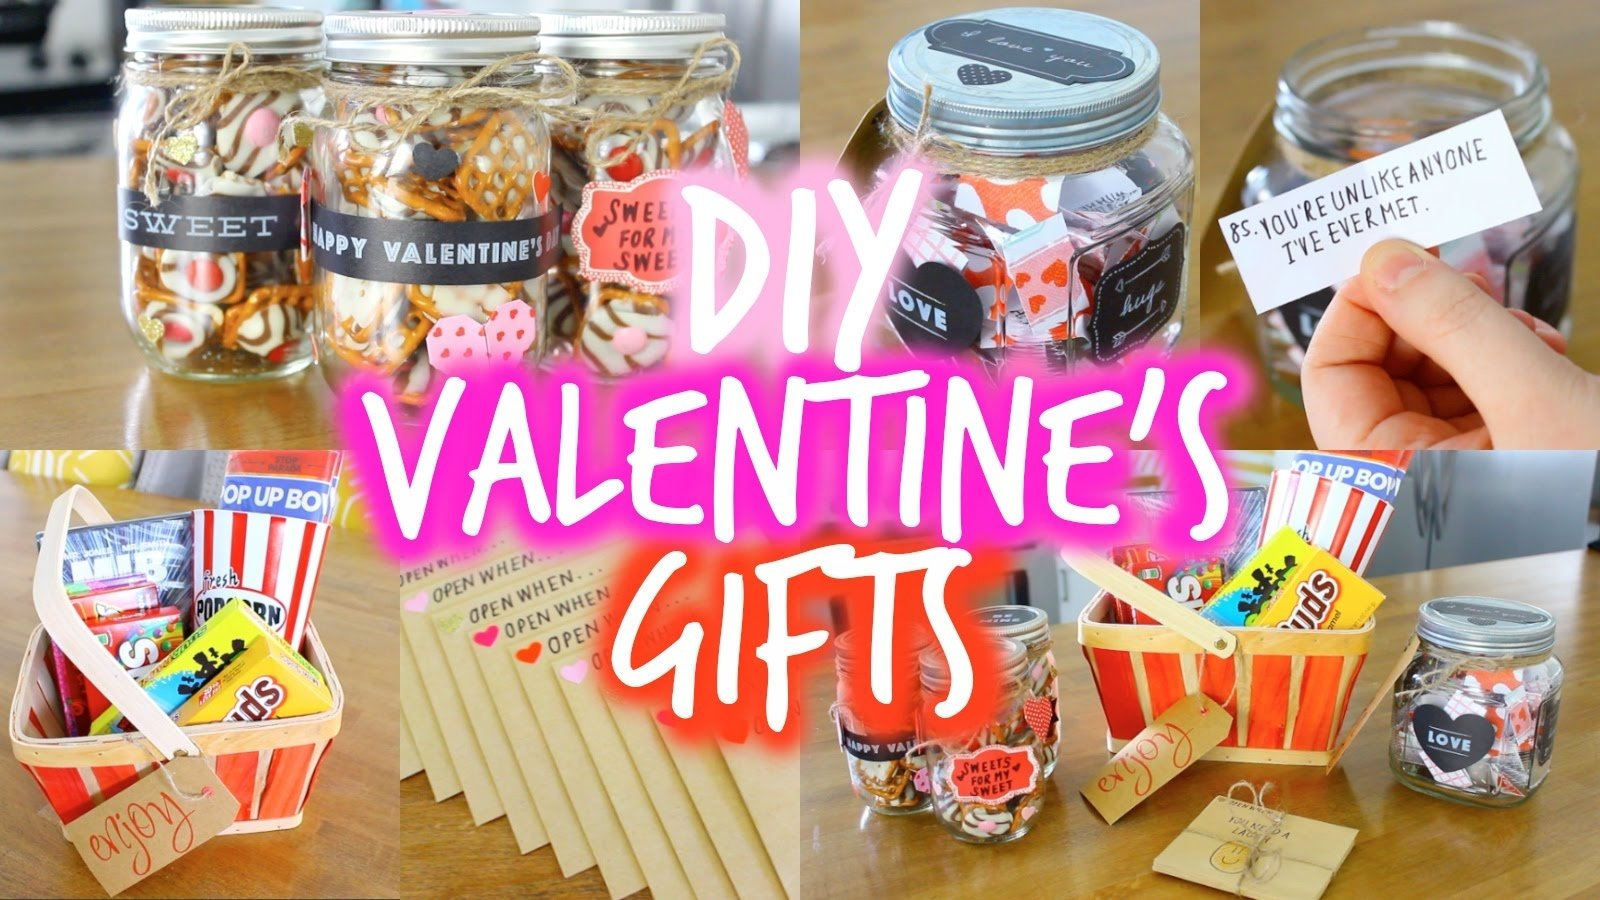 10 Cute V Day Gift Ideas For Him easy diy valentines day gift ideas for your boyfriend youtube 1 2020